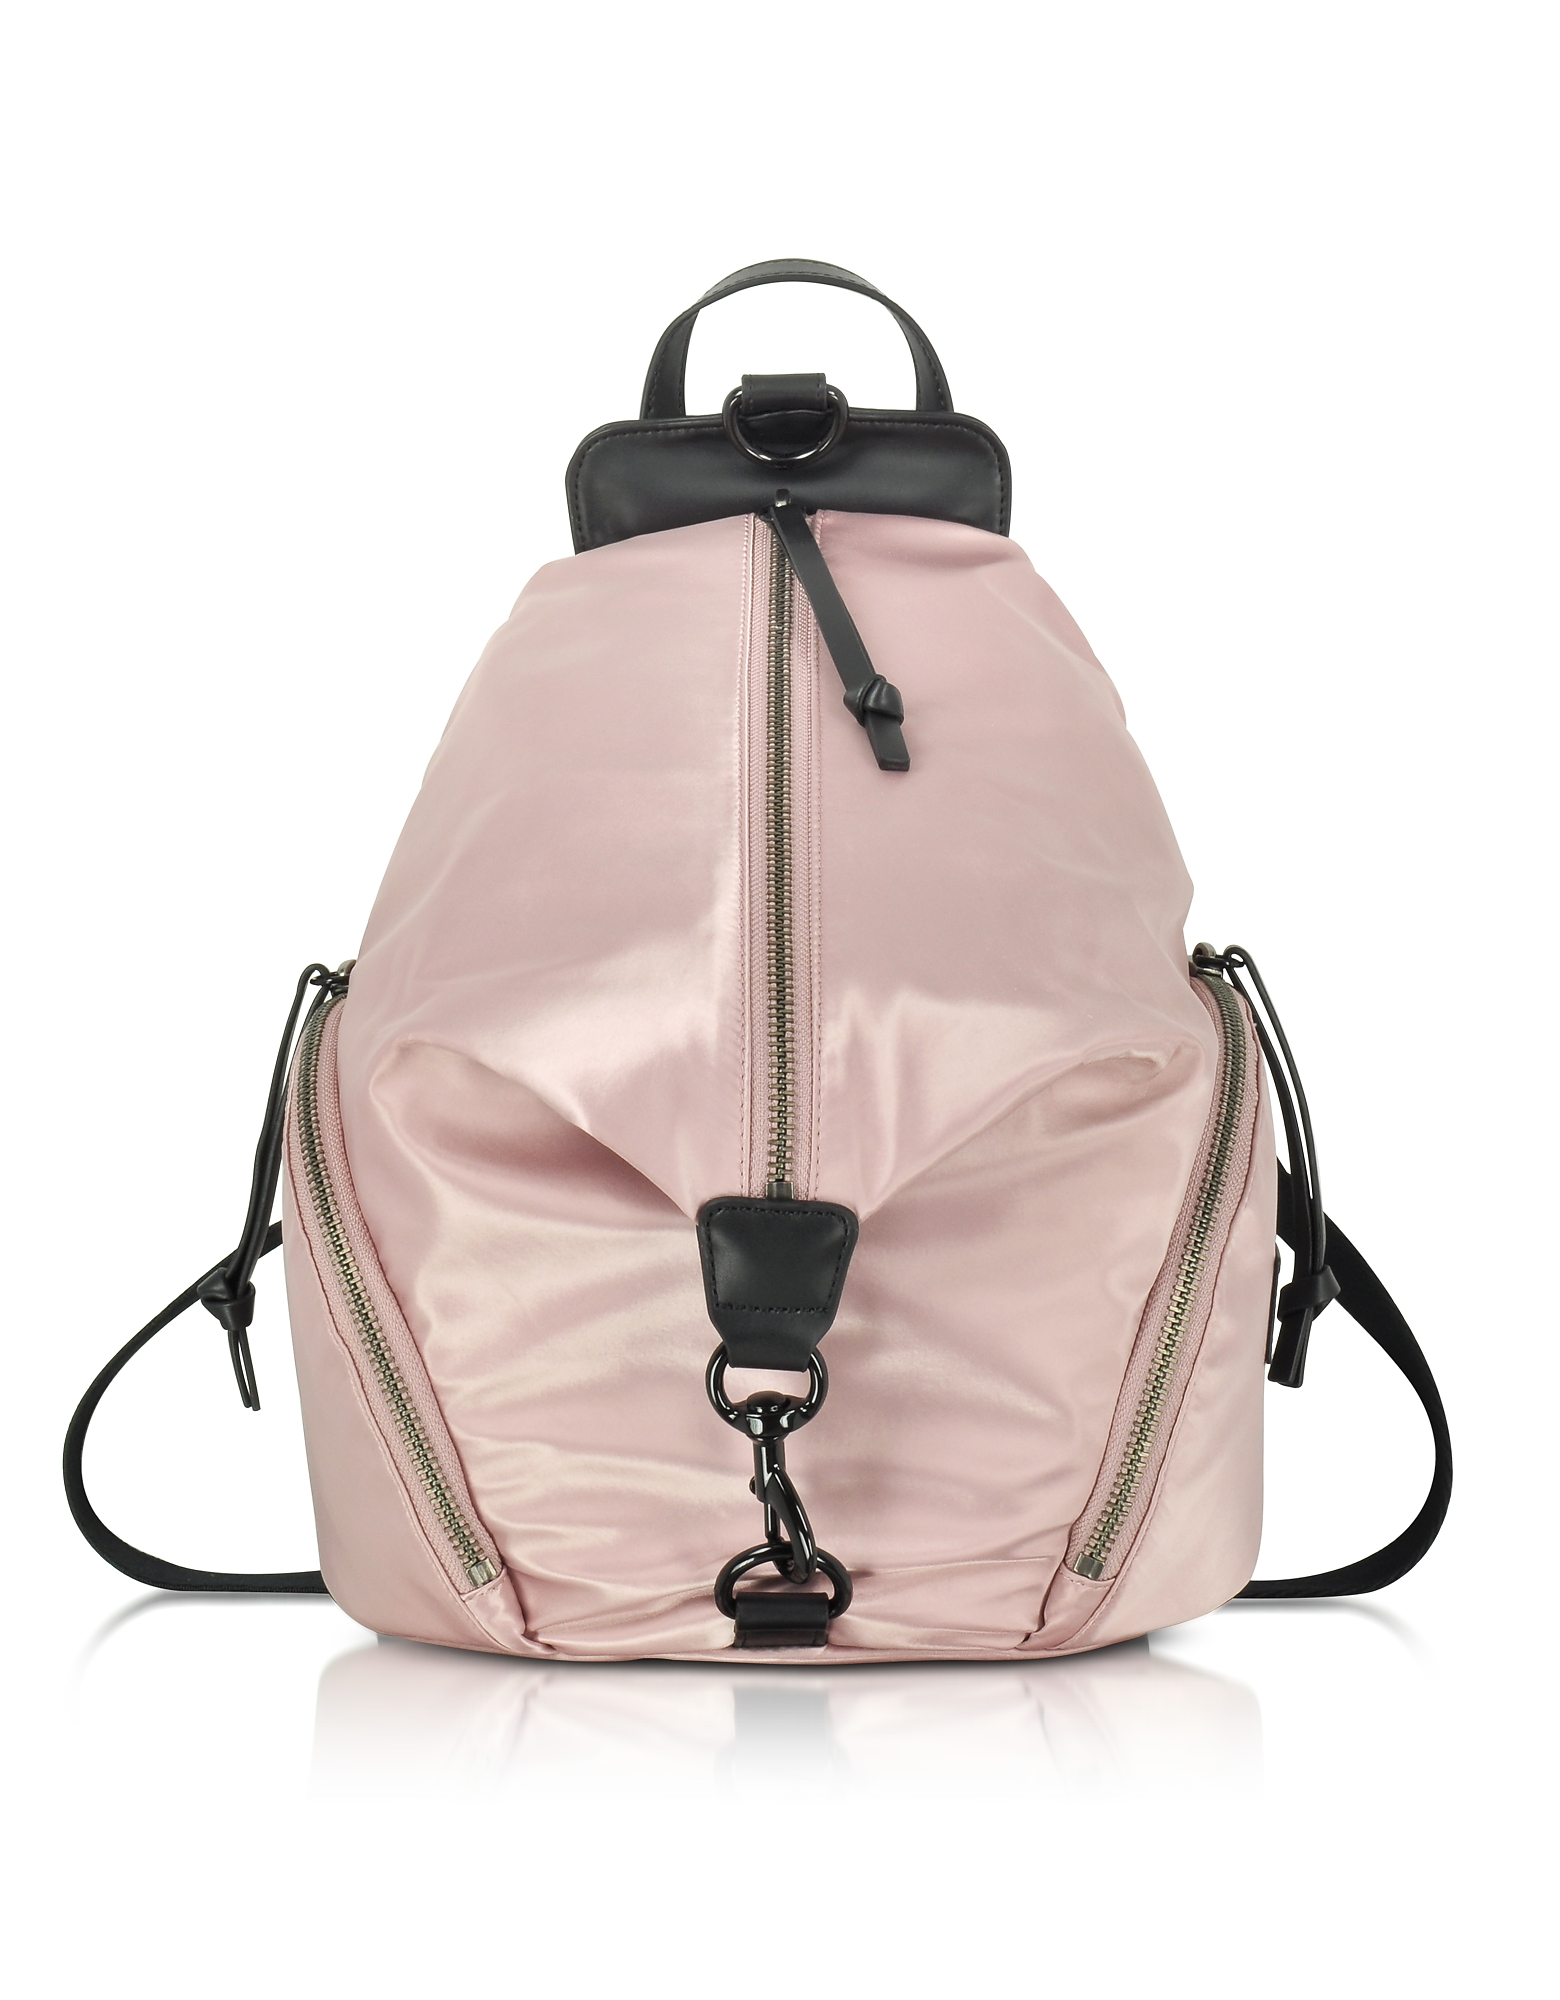 Rebecca Minkoff Handbags, Dark Vintage Pink Julian Nylon Backpack